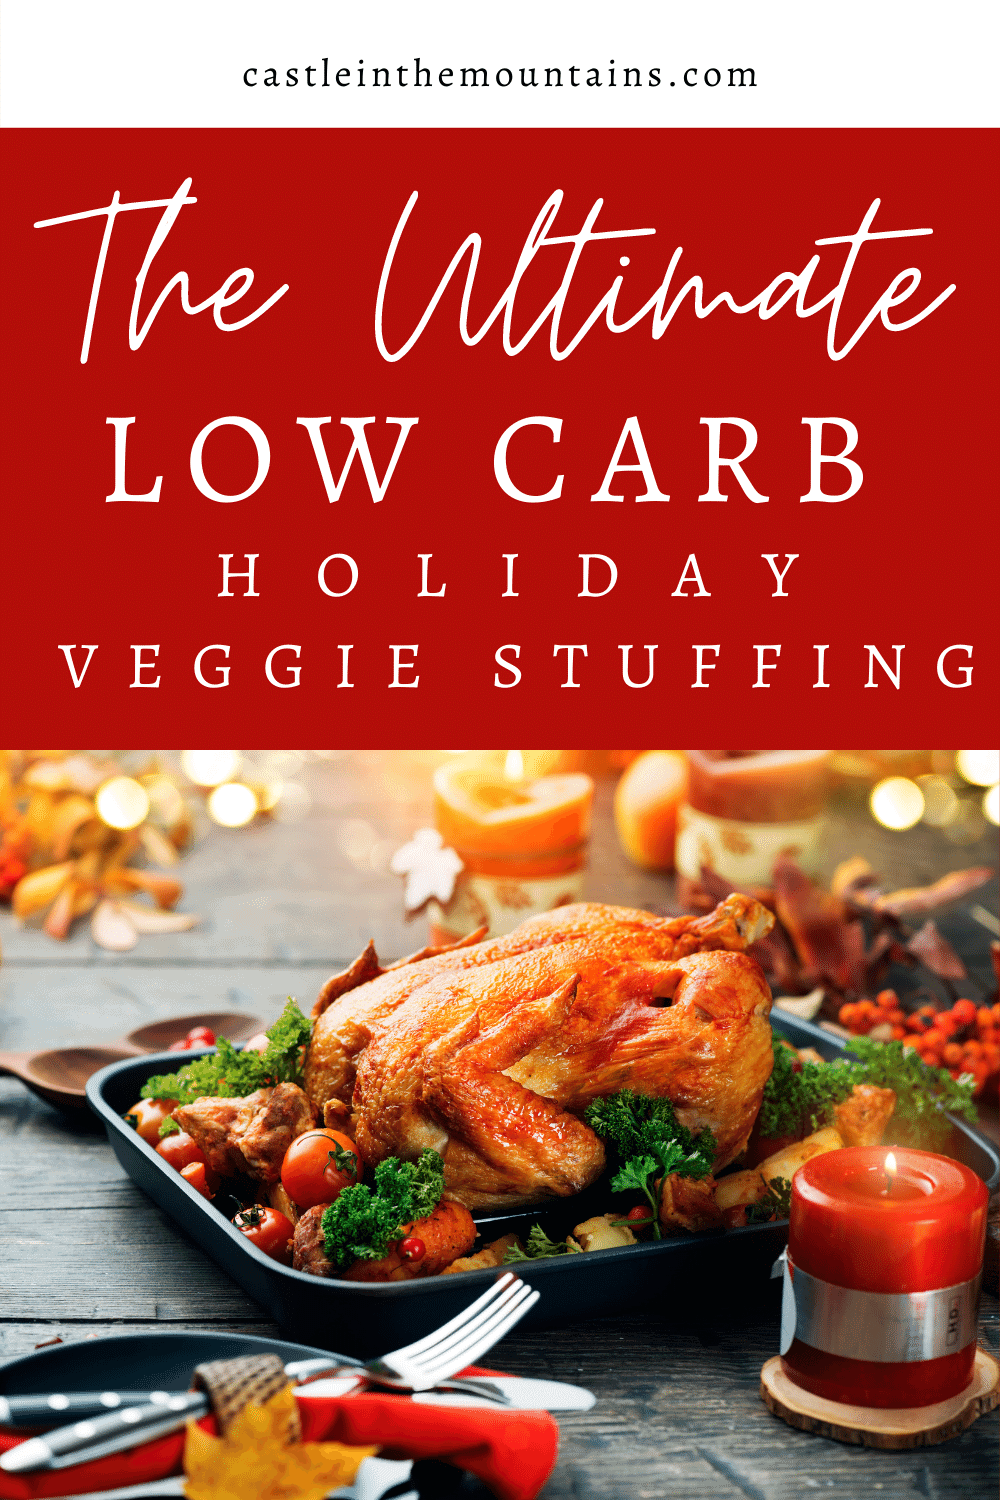 Vegetable Holiday Stuffing - How to make low carb stuffing great!